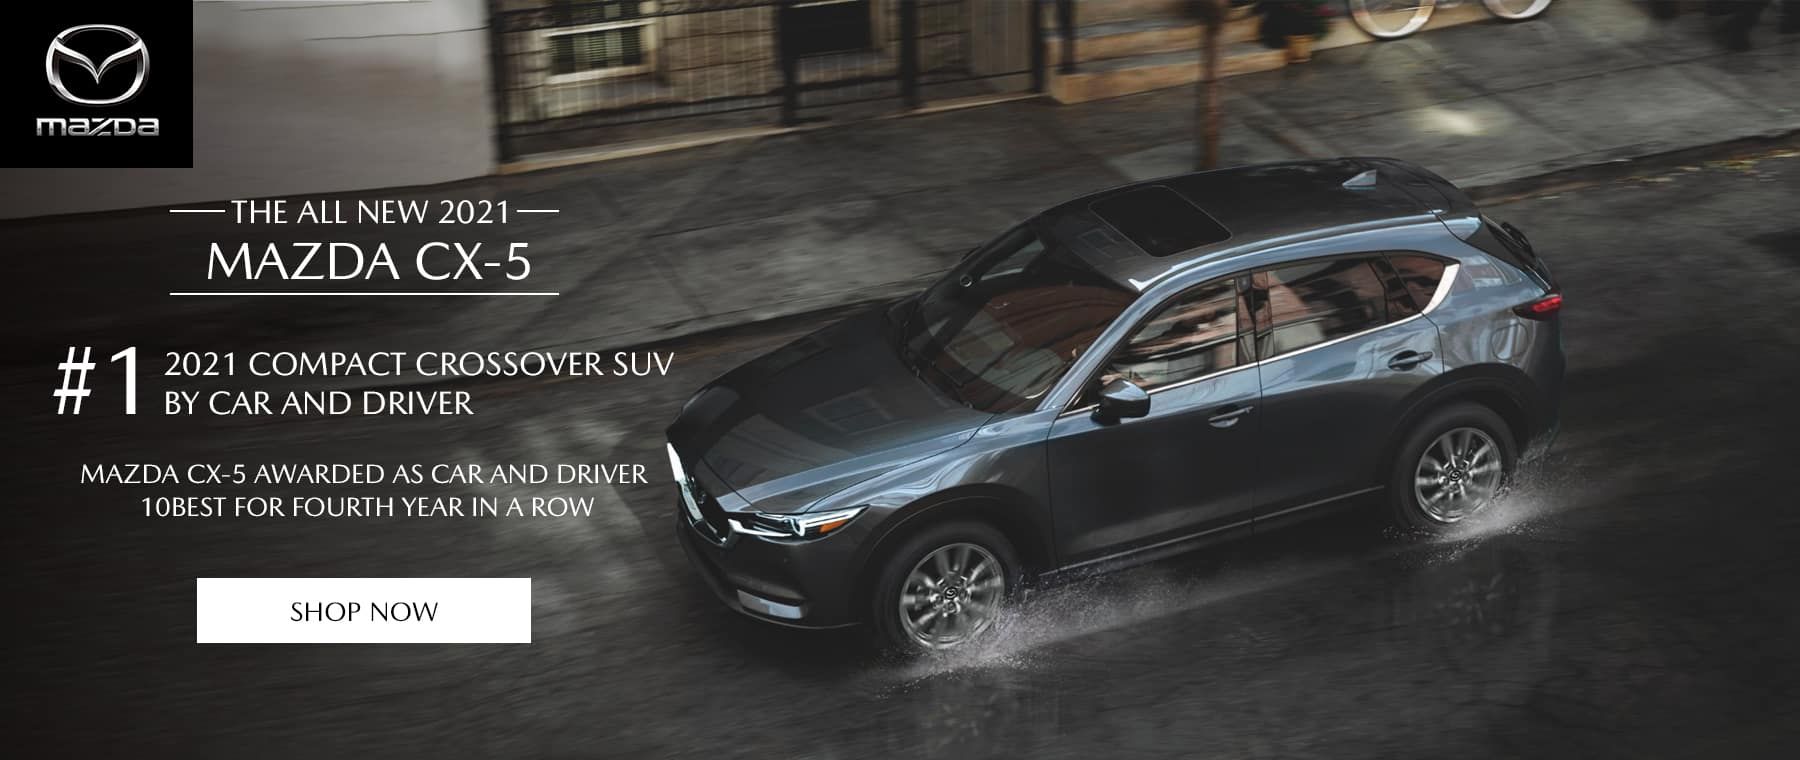 The all new 2021 Mazda CX-5 #1 2021 Compact Crossover SUV by car and driver